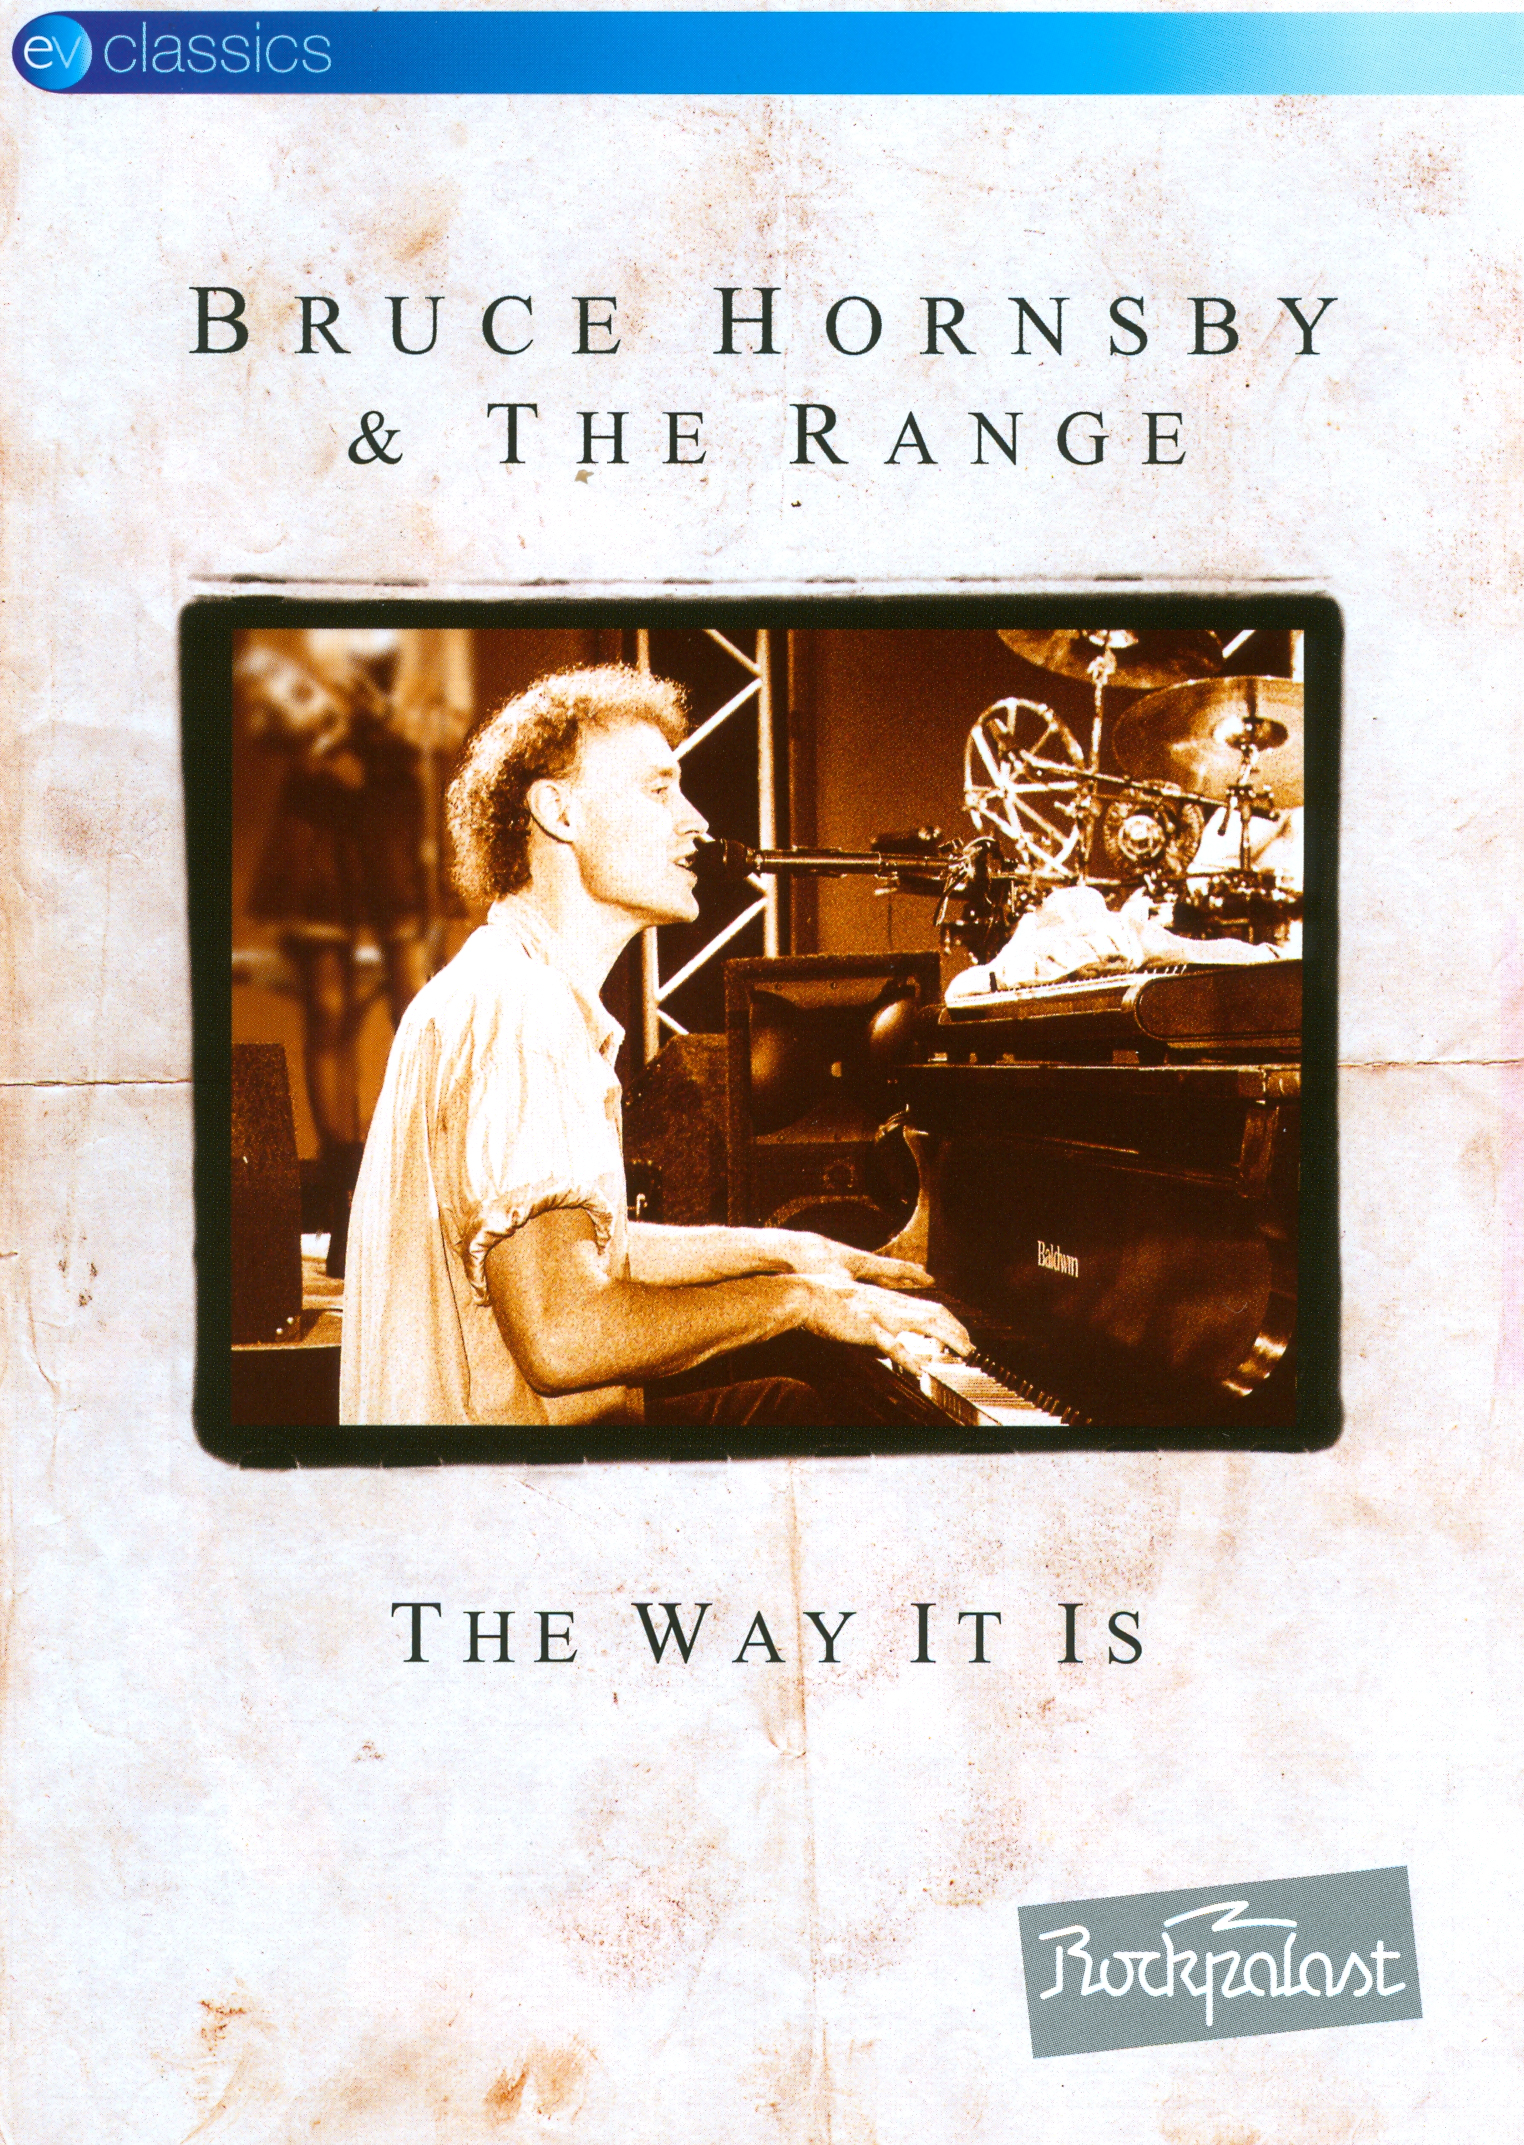 Rockpalast: Bruce Hornsby & The Range - The Way It Is